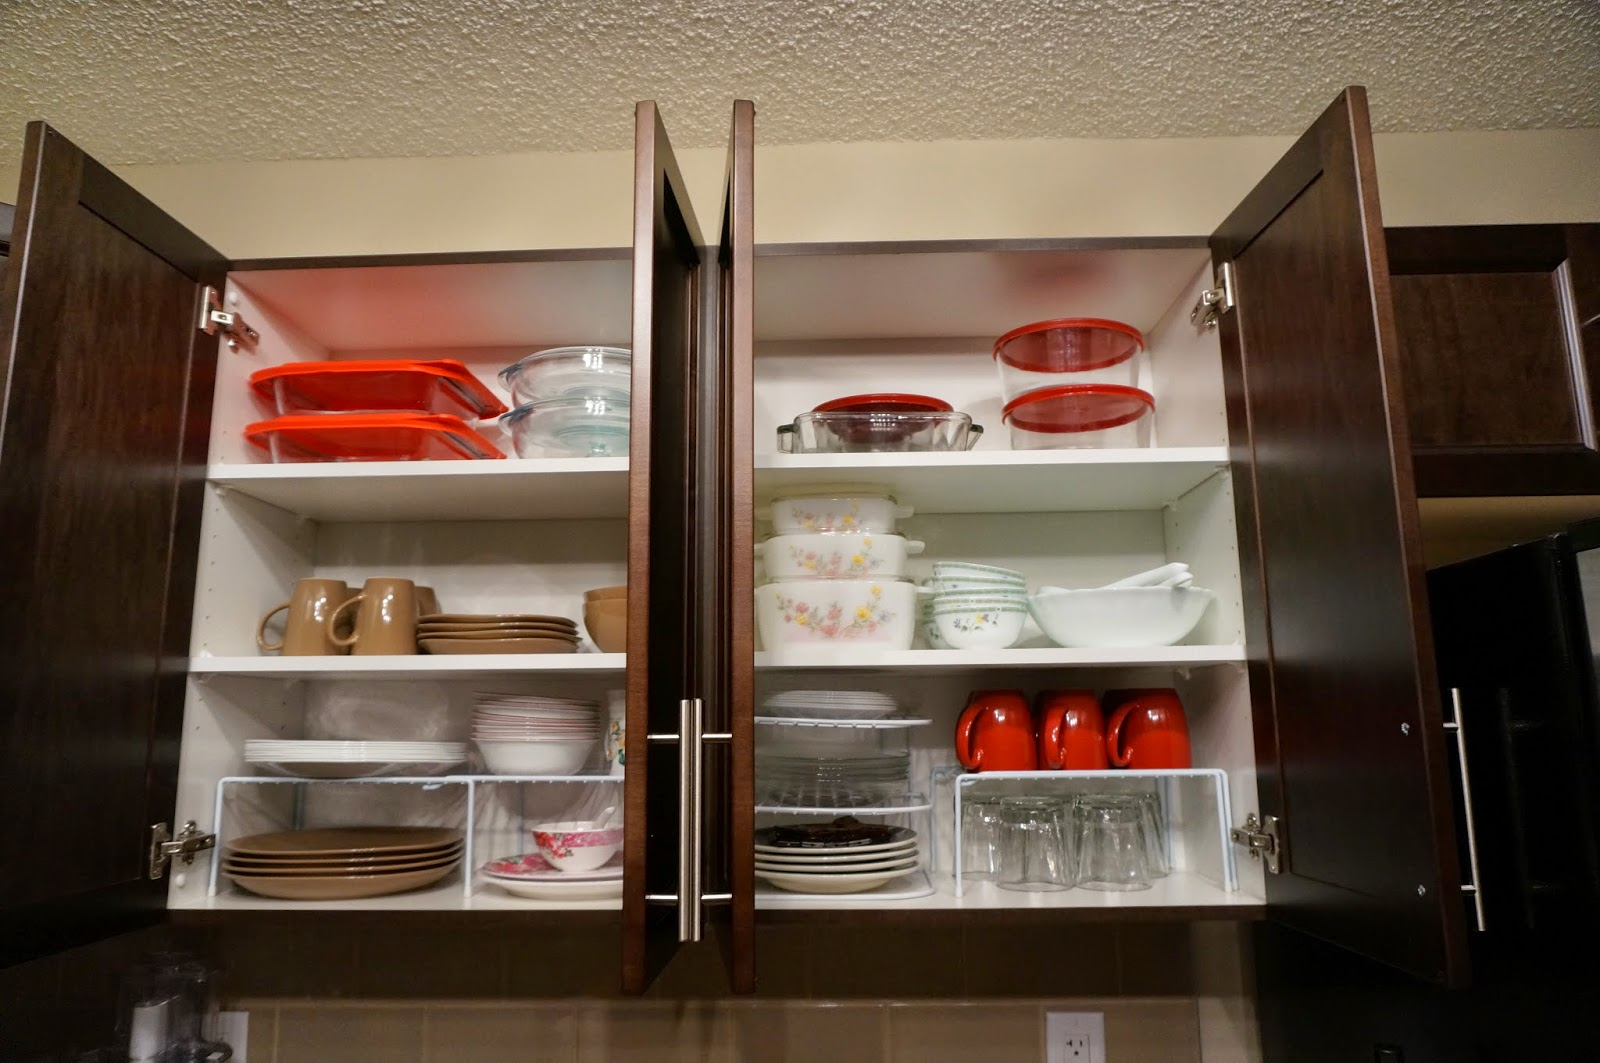 We love cozy homes how to organize kitchen cabinet shelves for Ideas organizing kitchen cabinets